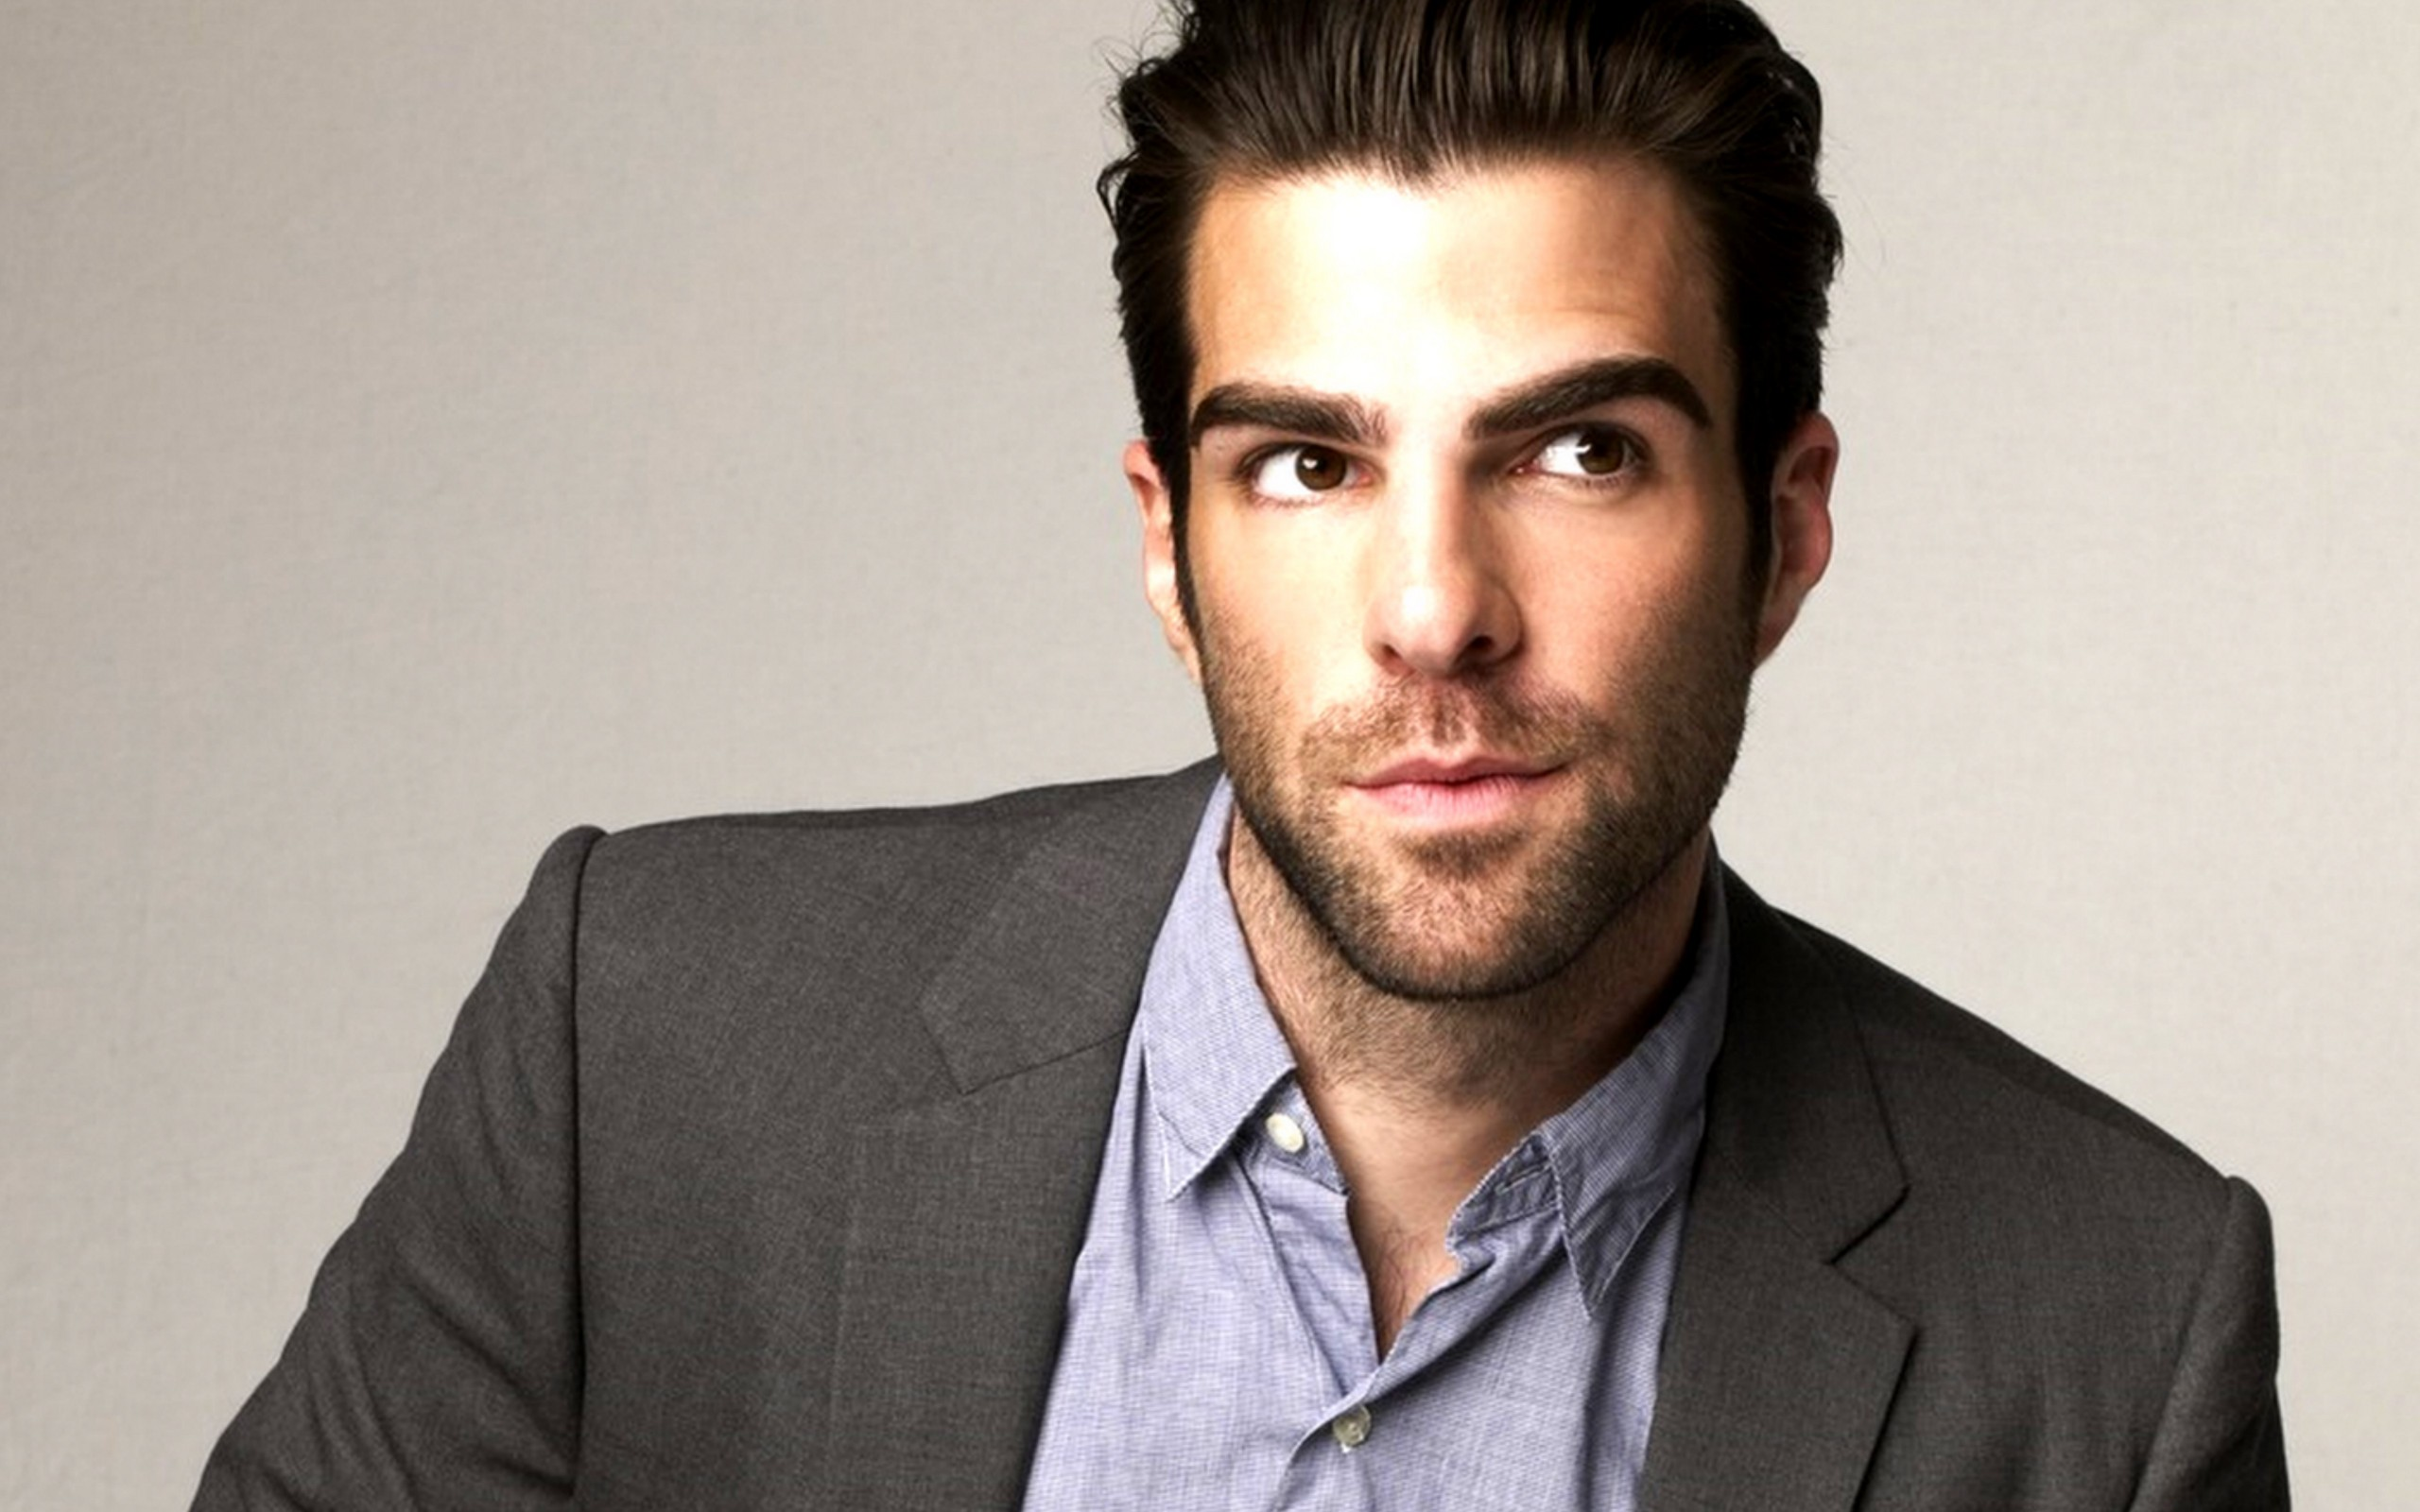 zachary quinto images zq widescreen wallpaper hd wallpaper and